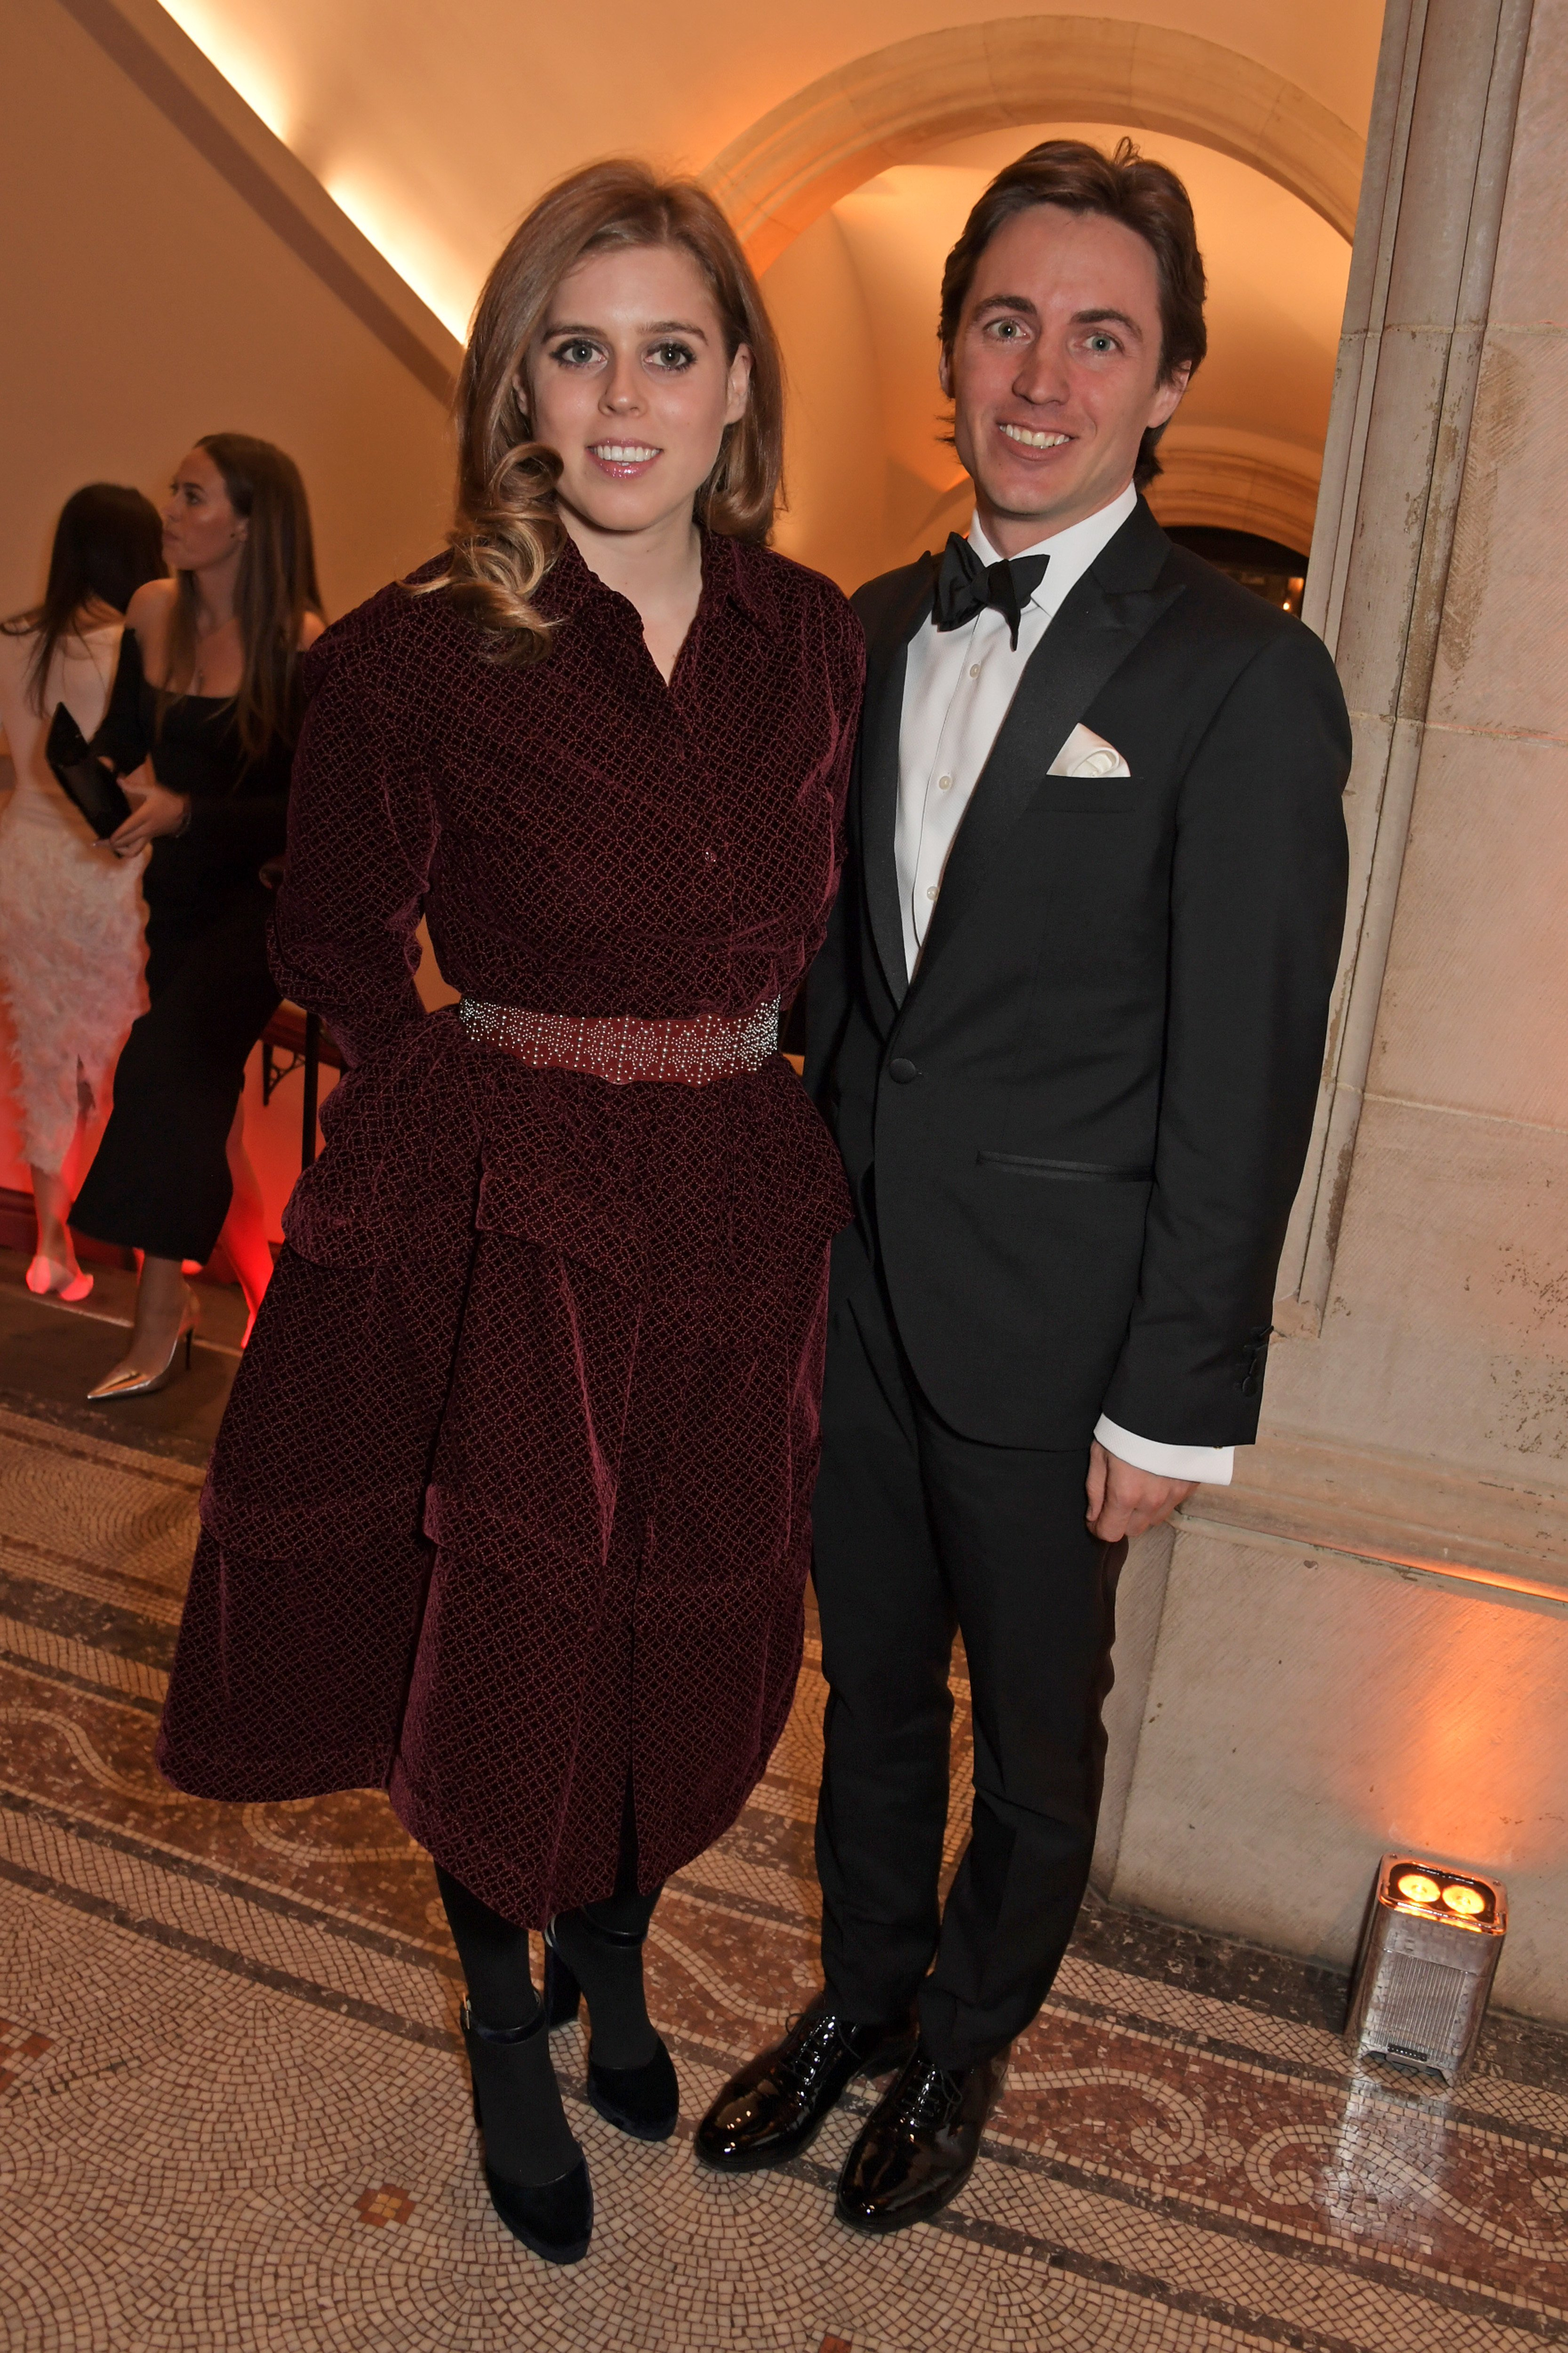 Princess Beatrice and Edoardo Mozzi at London's National Portrait Gallery in March 2019 | Photo: Getty Images